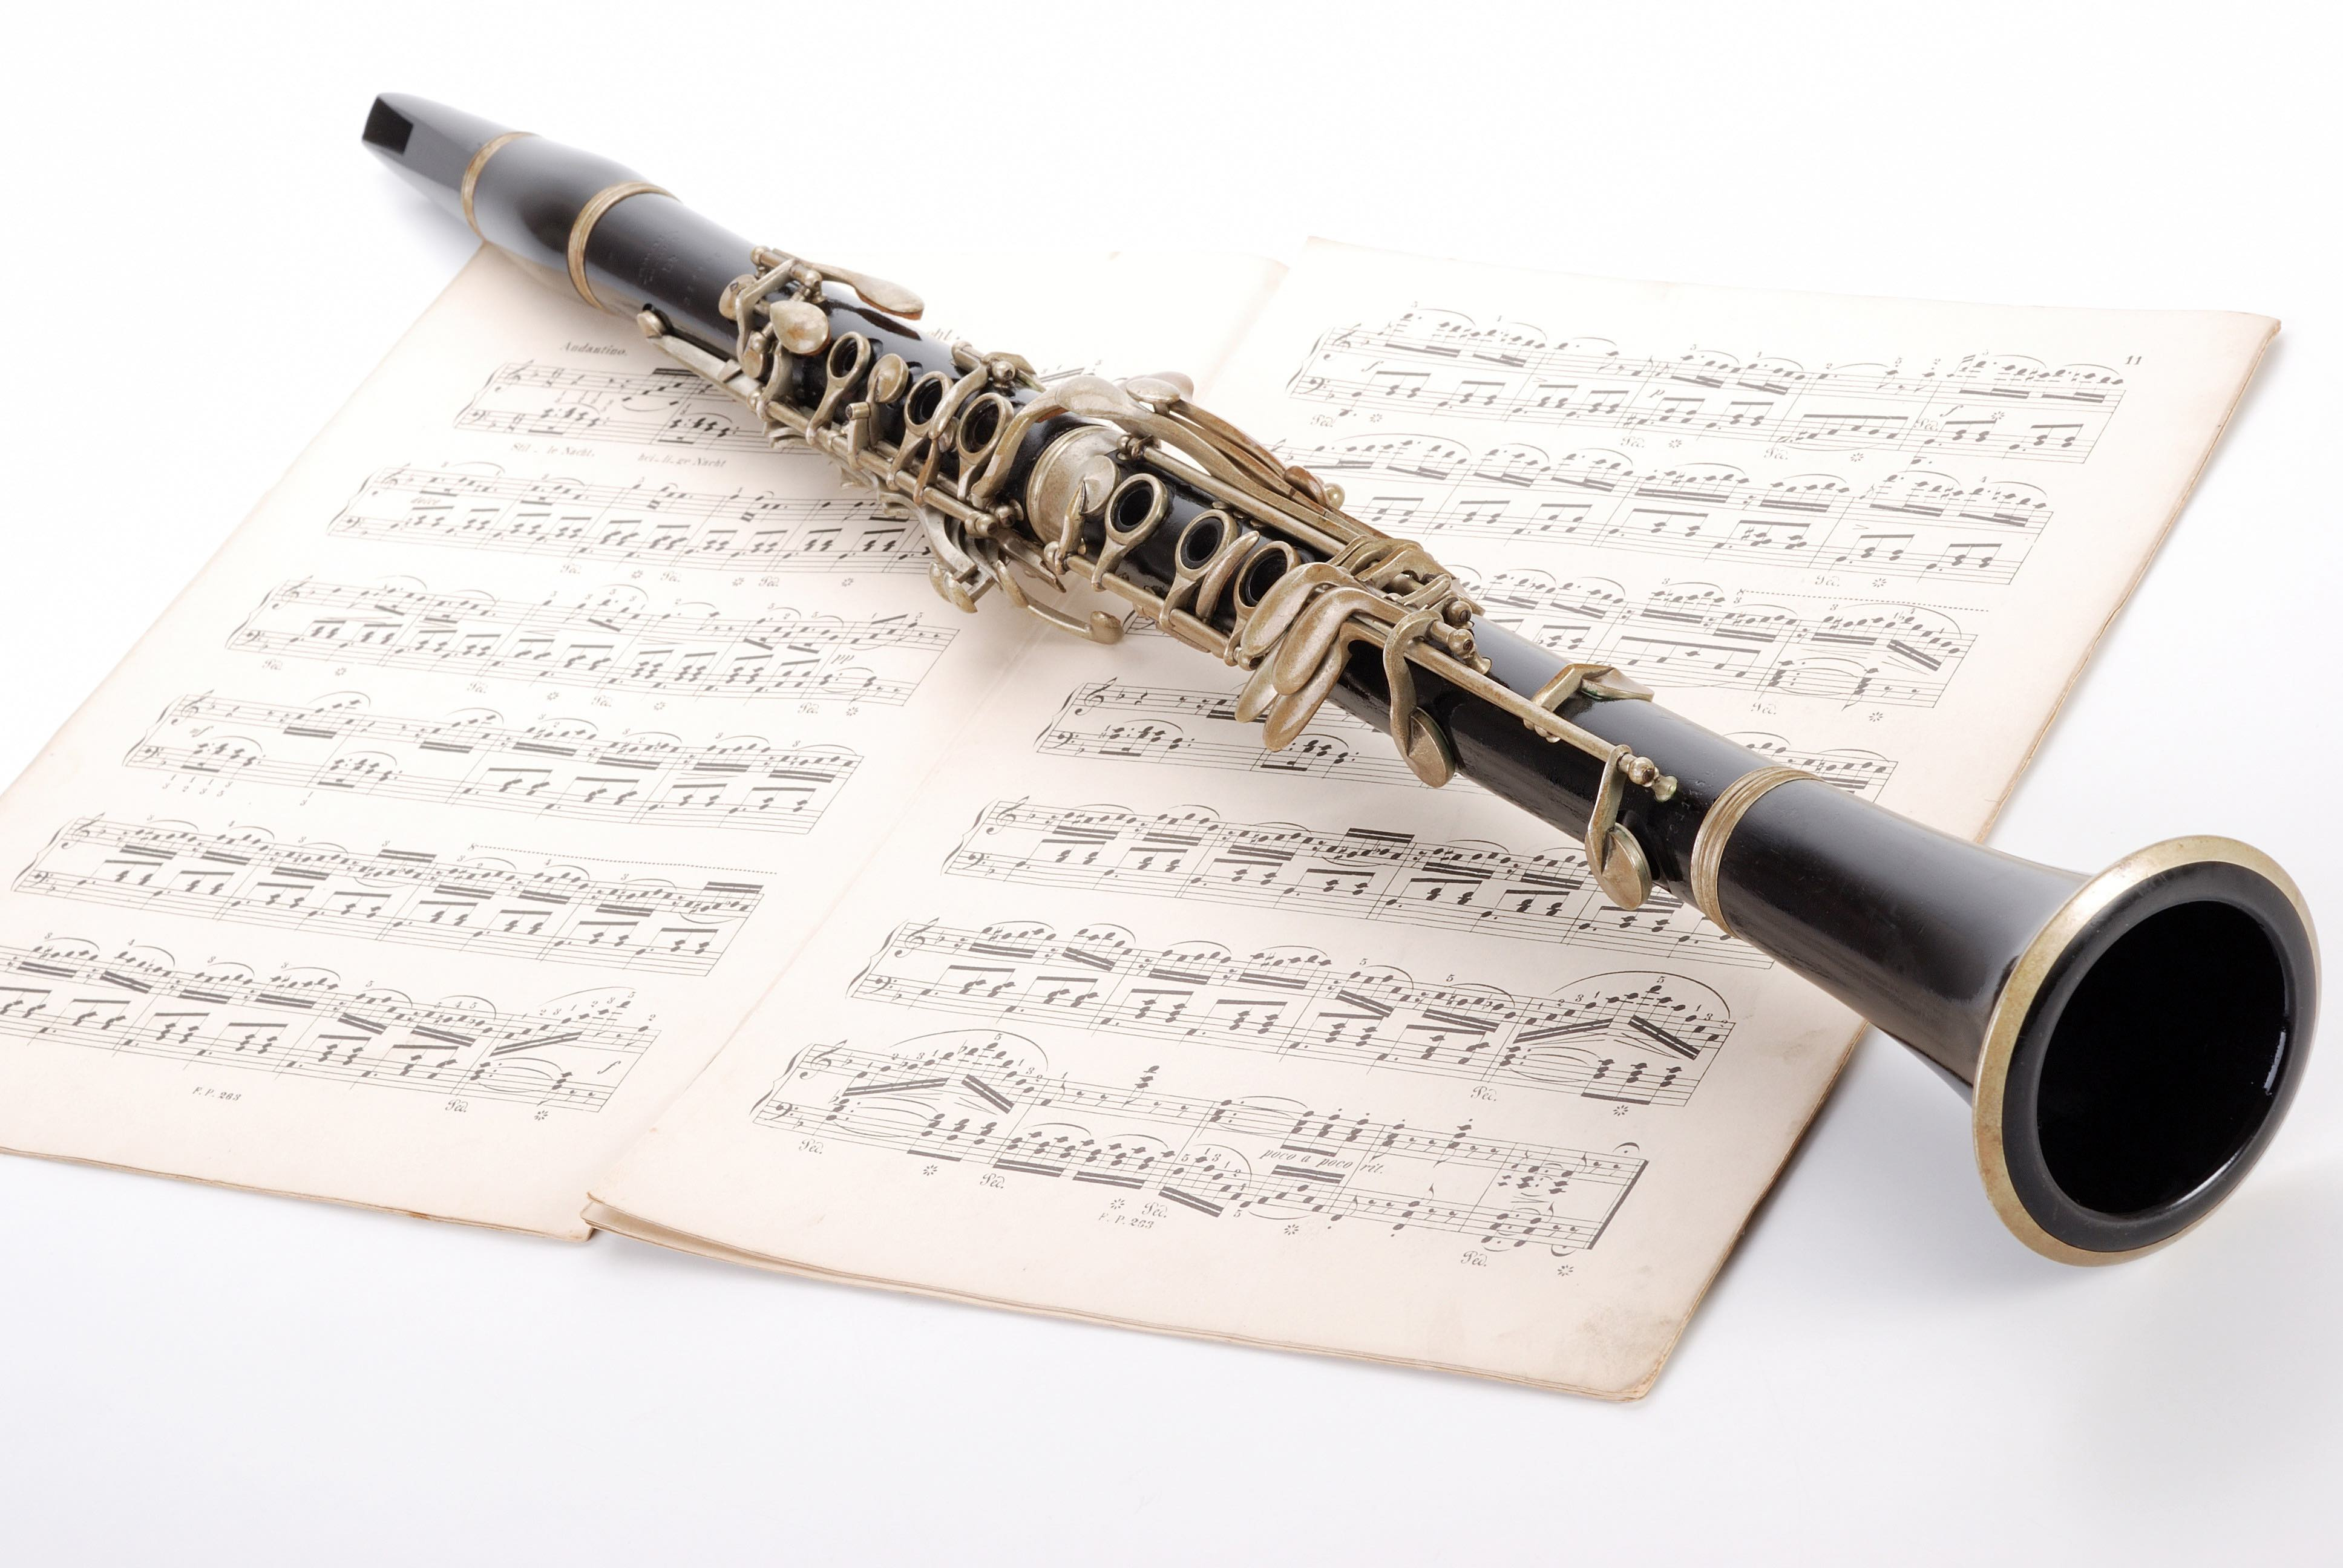 A photo of clarinet.